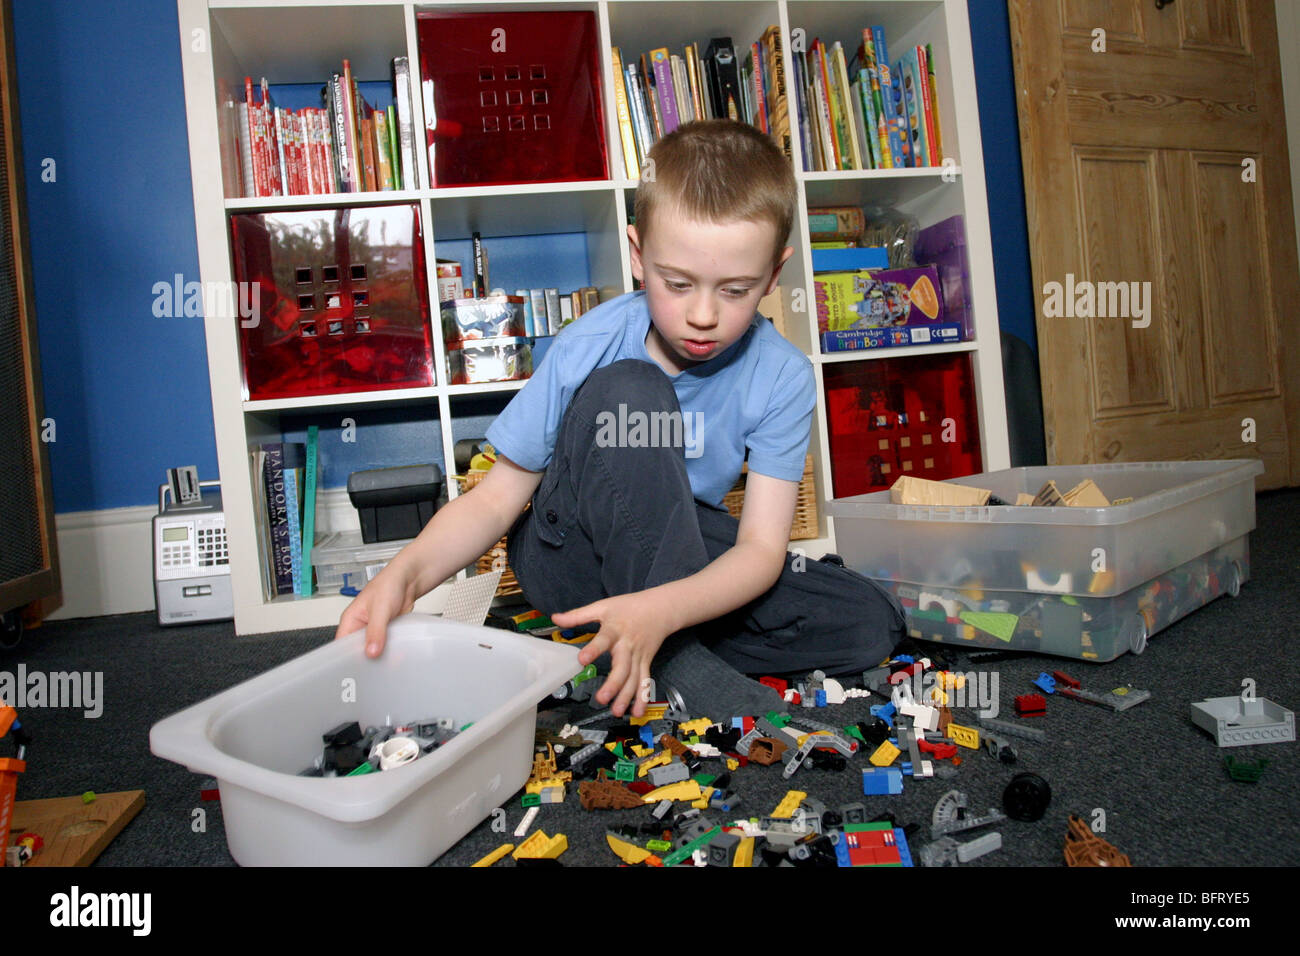 Young Boy Tidying Toys In His Bedroom Stock Photo